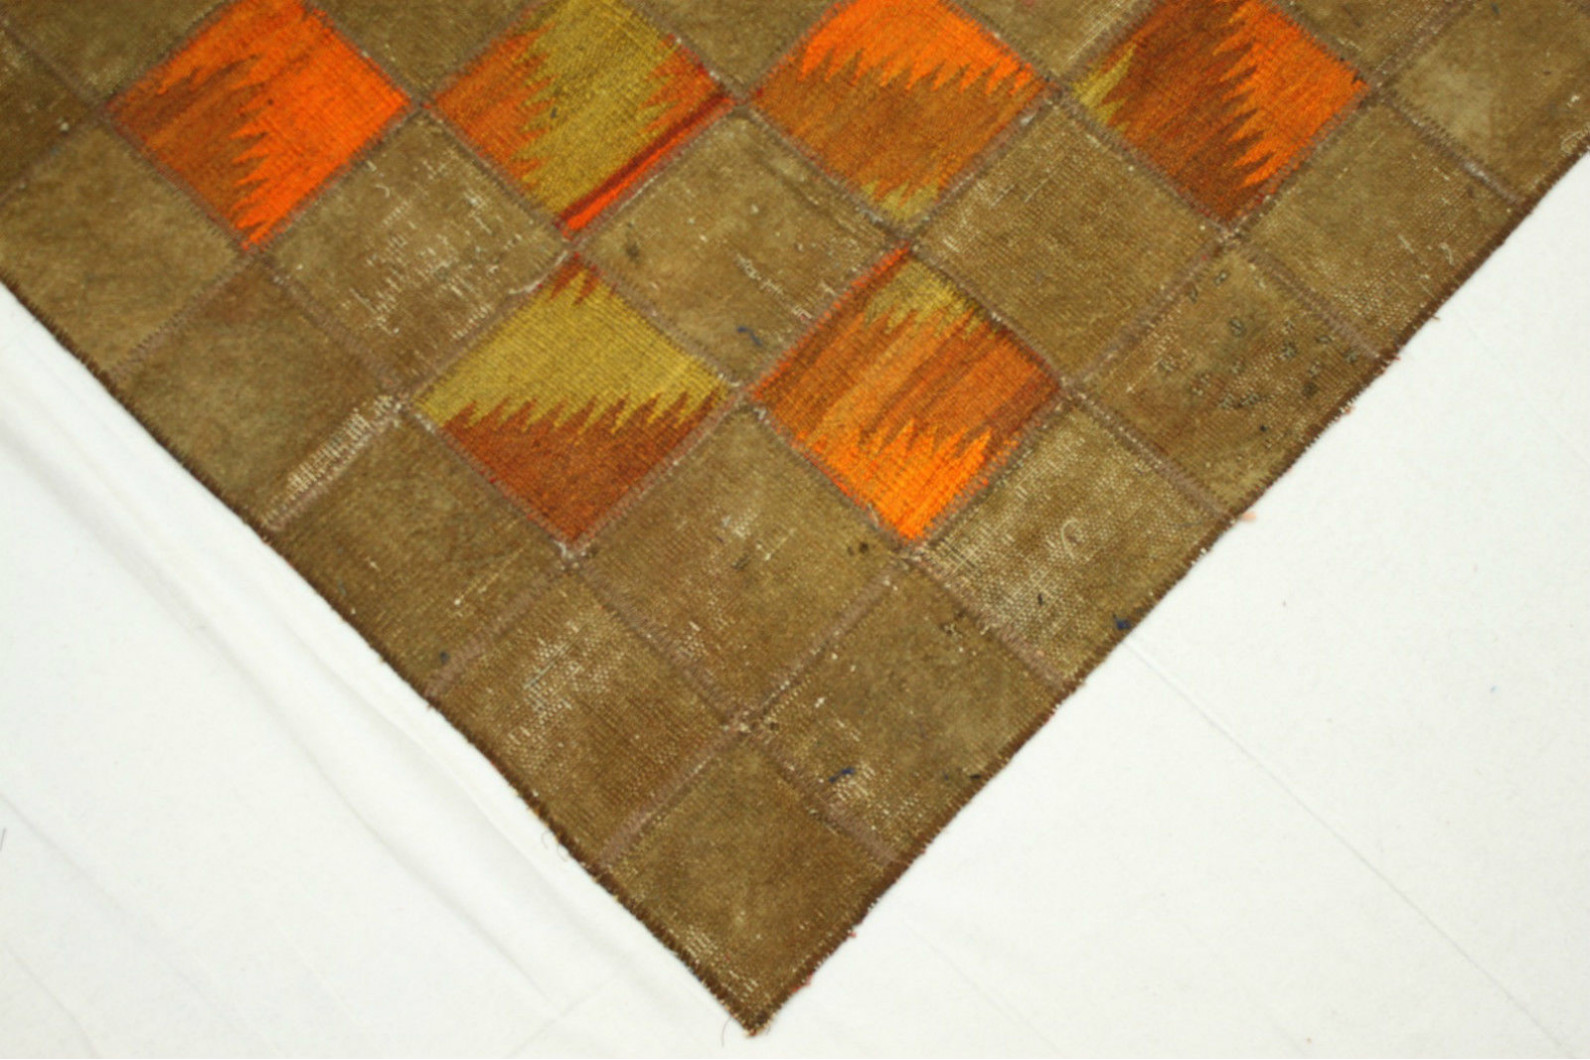 Teppich Orange Patchwork Teppich Orange Braun In 300x200cm 1001 2359